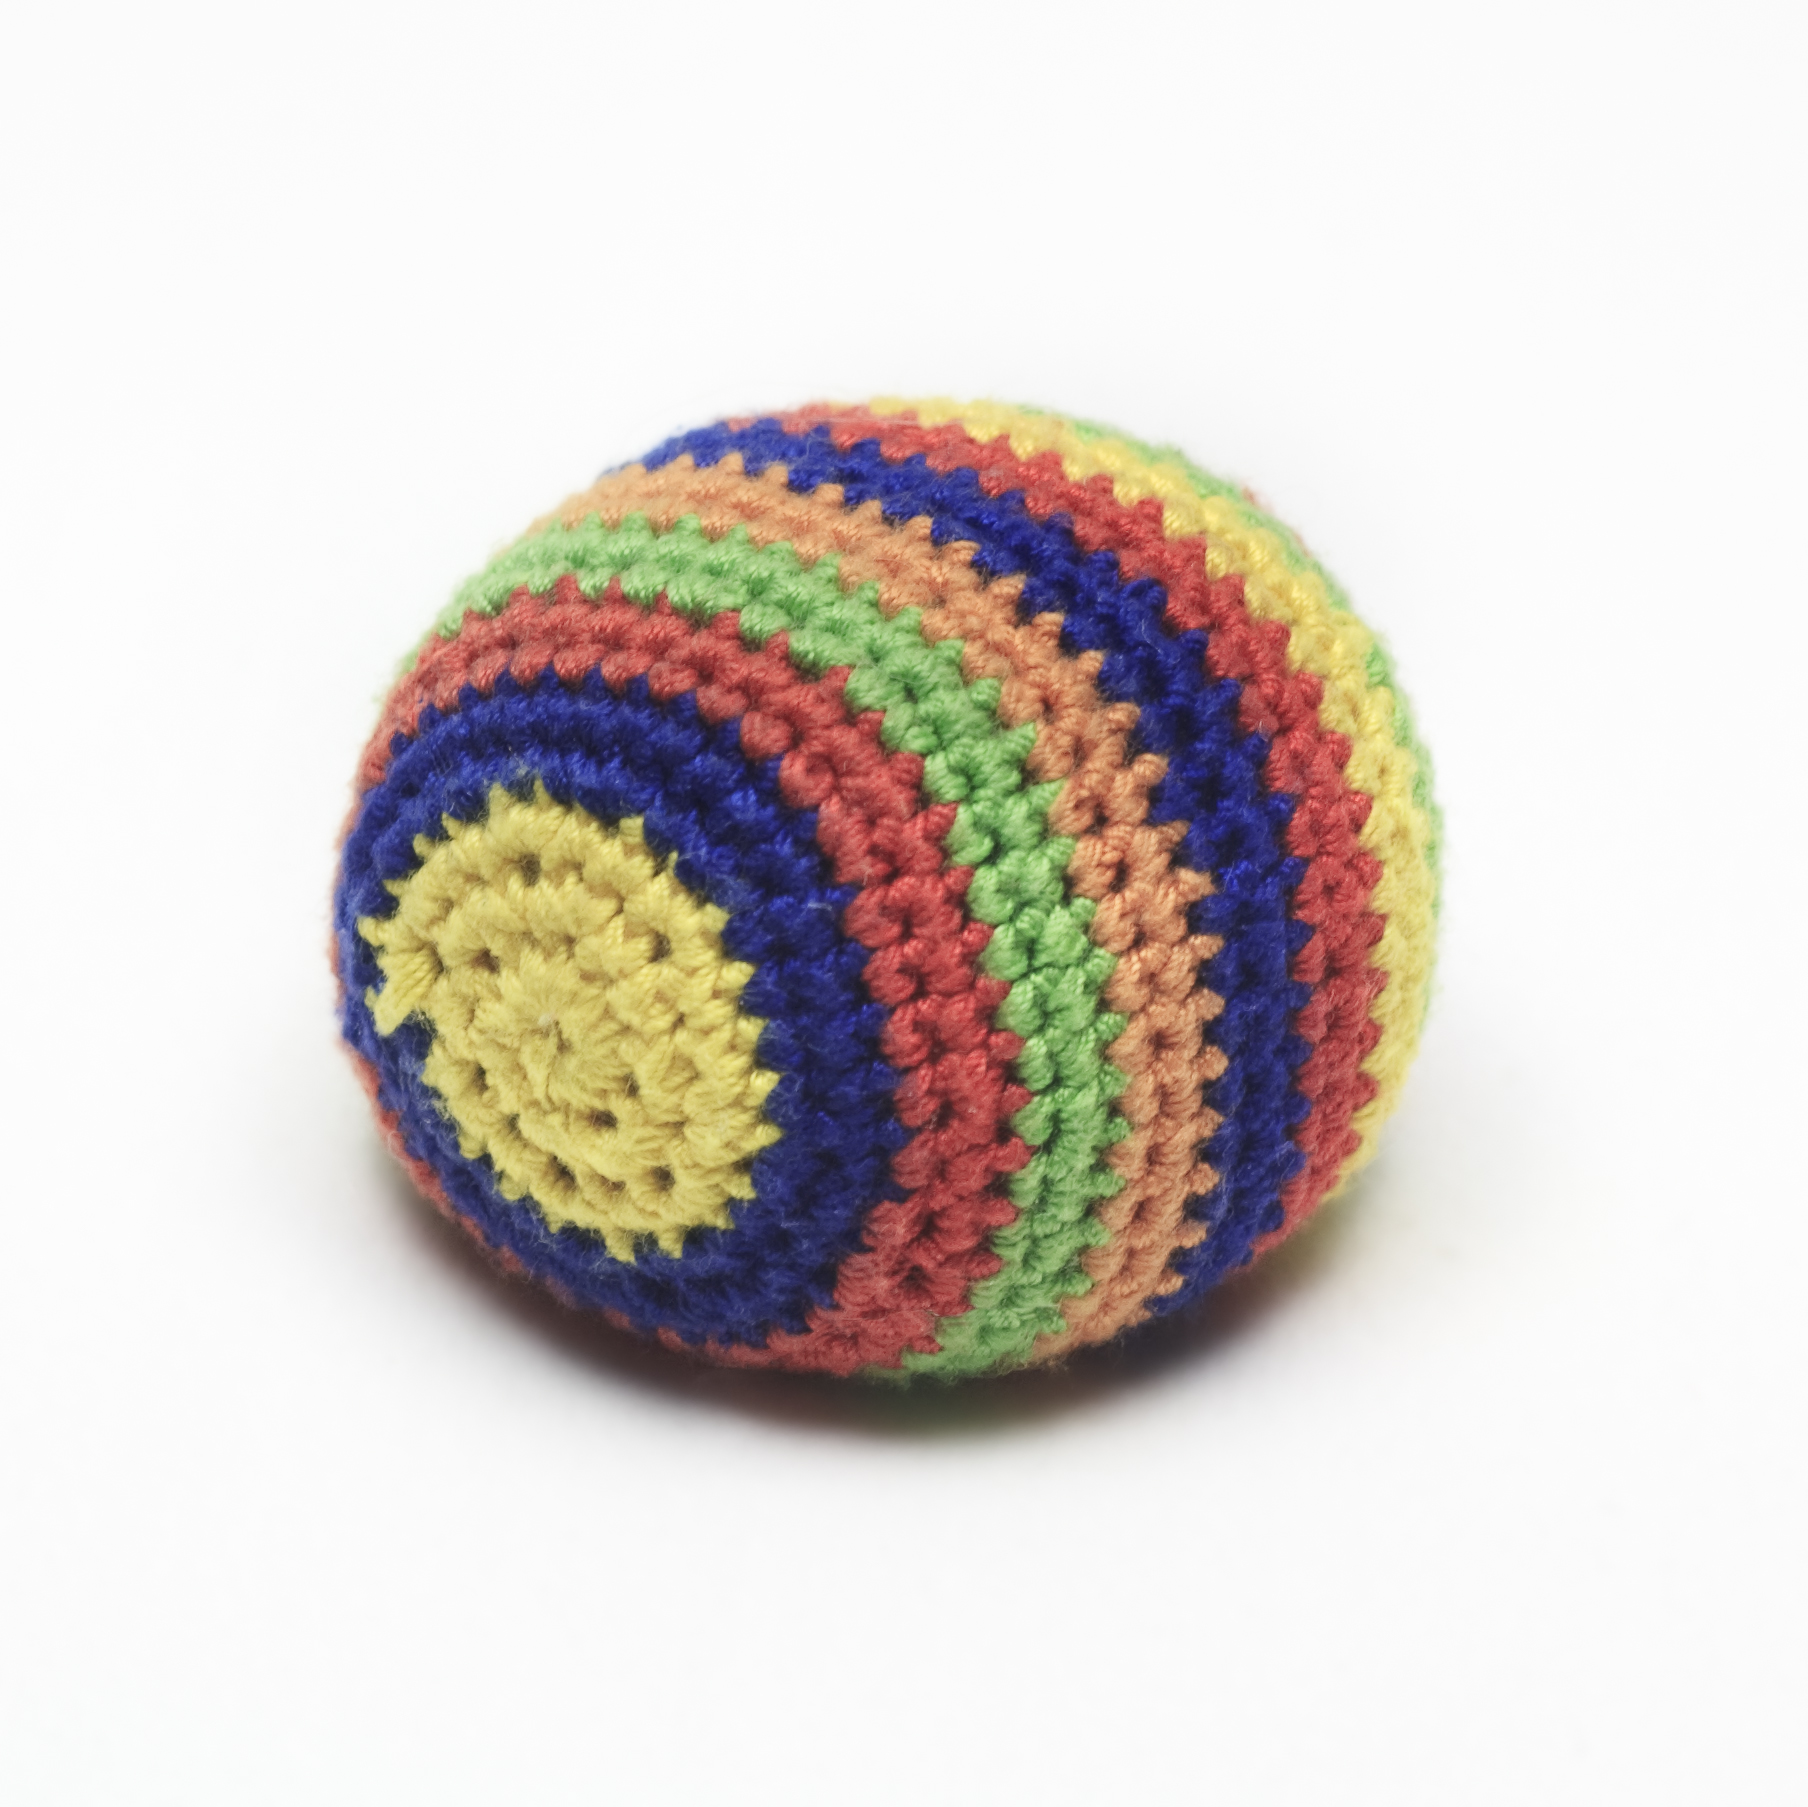 Photo of a hacky sack